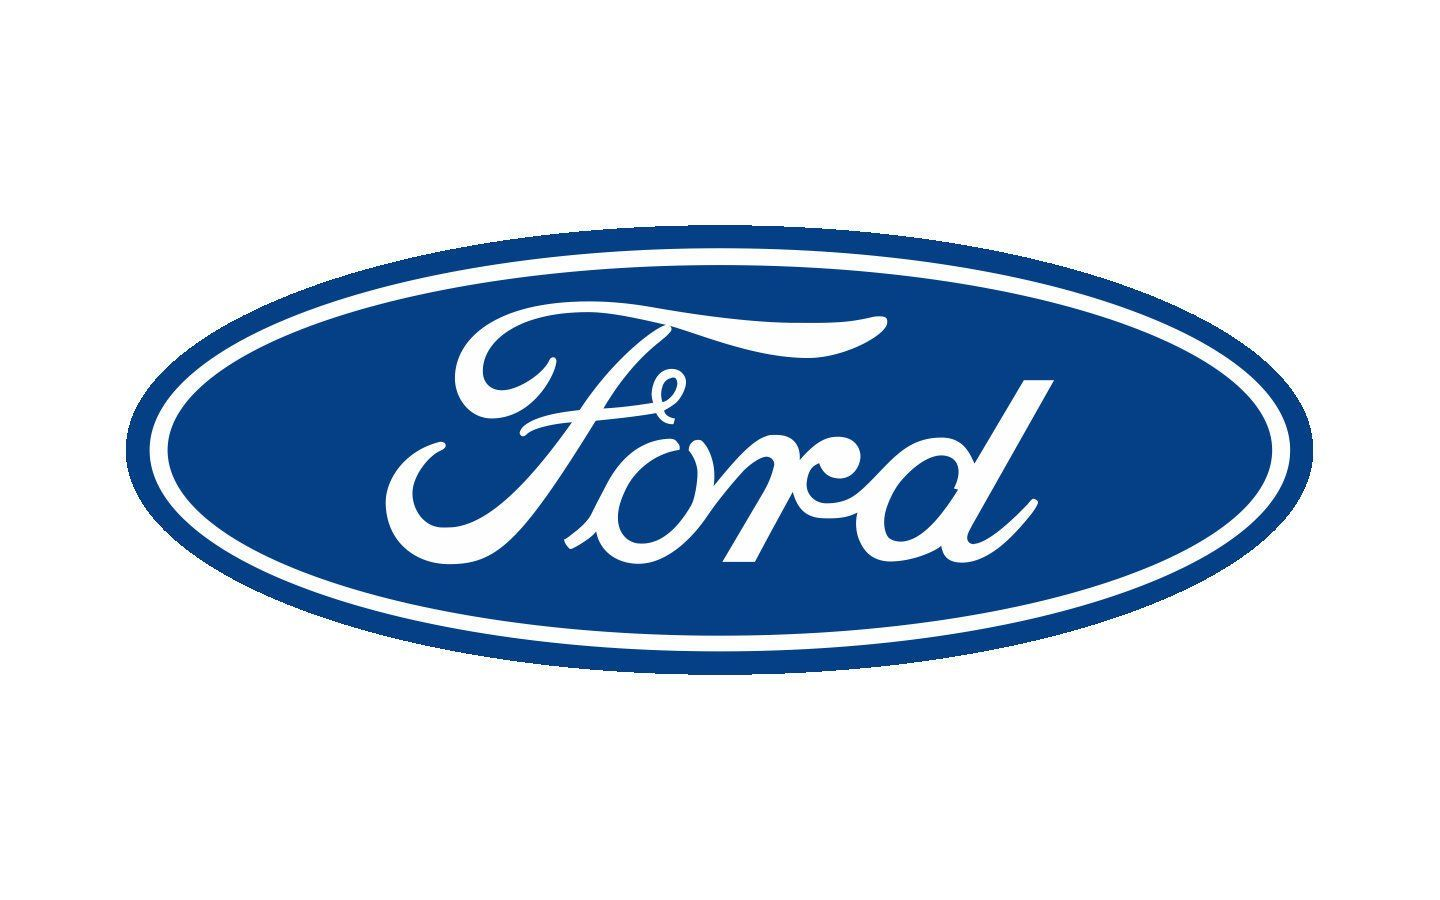 Ford Decal Sticker Https Etsy Me C1evrf Everythingelse Ford